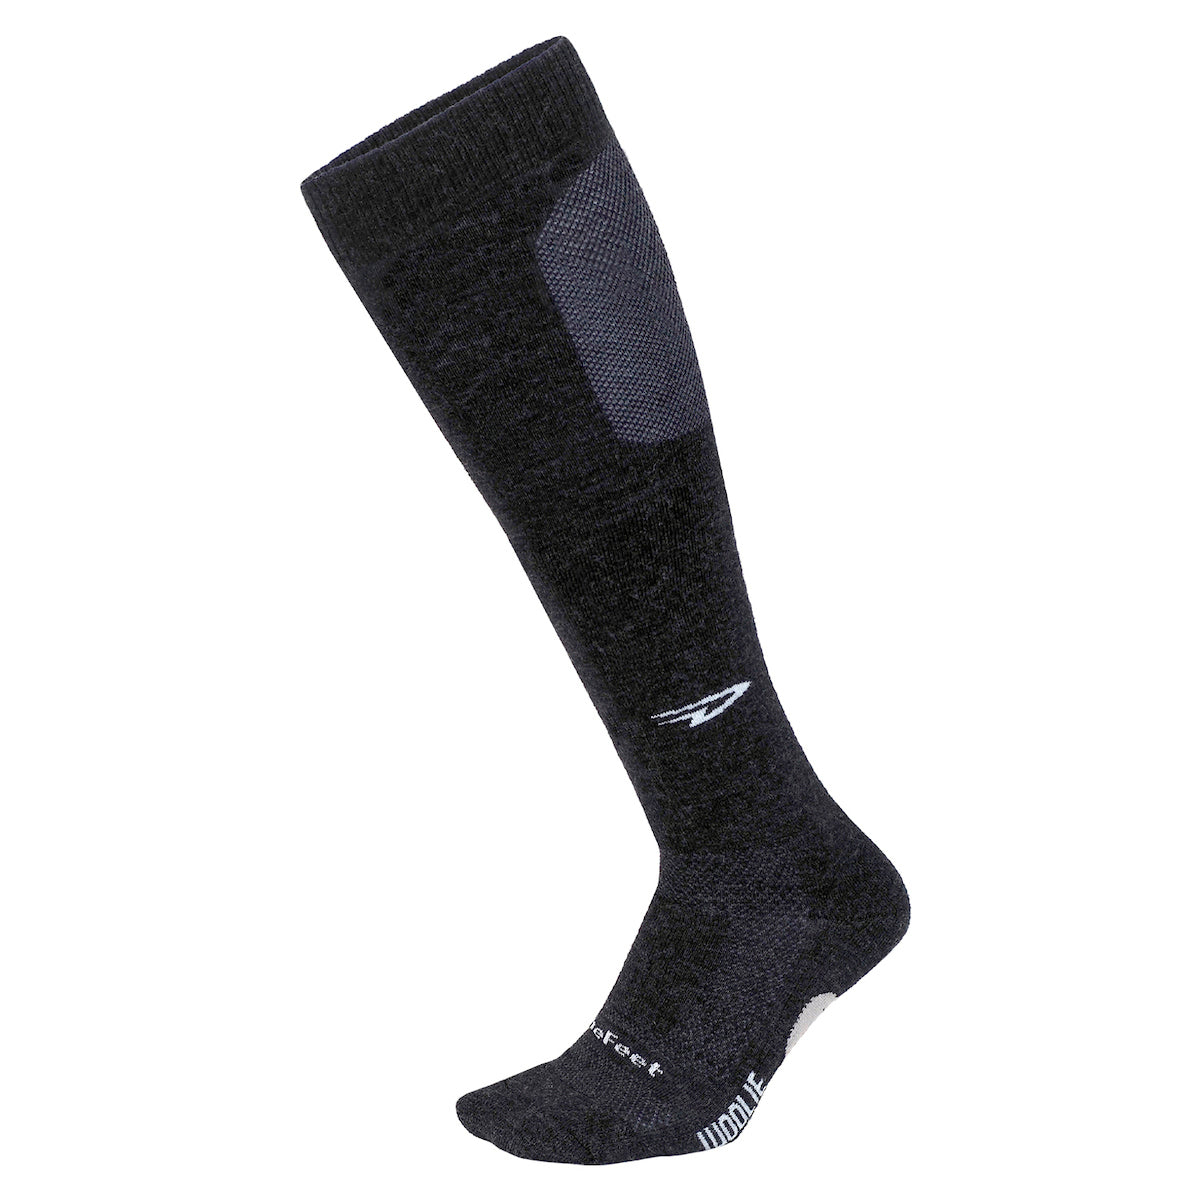 Woolie Boolie Knee High D-Logo Charcoal